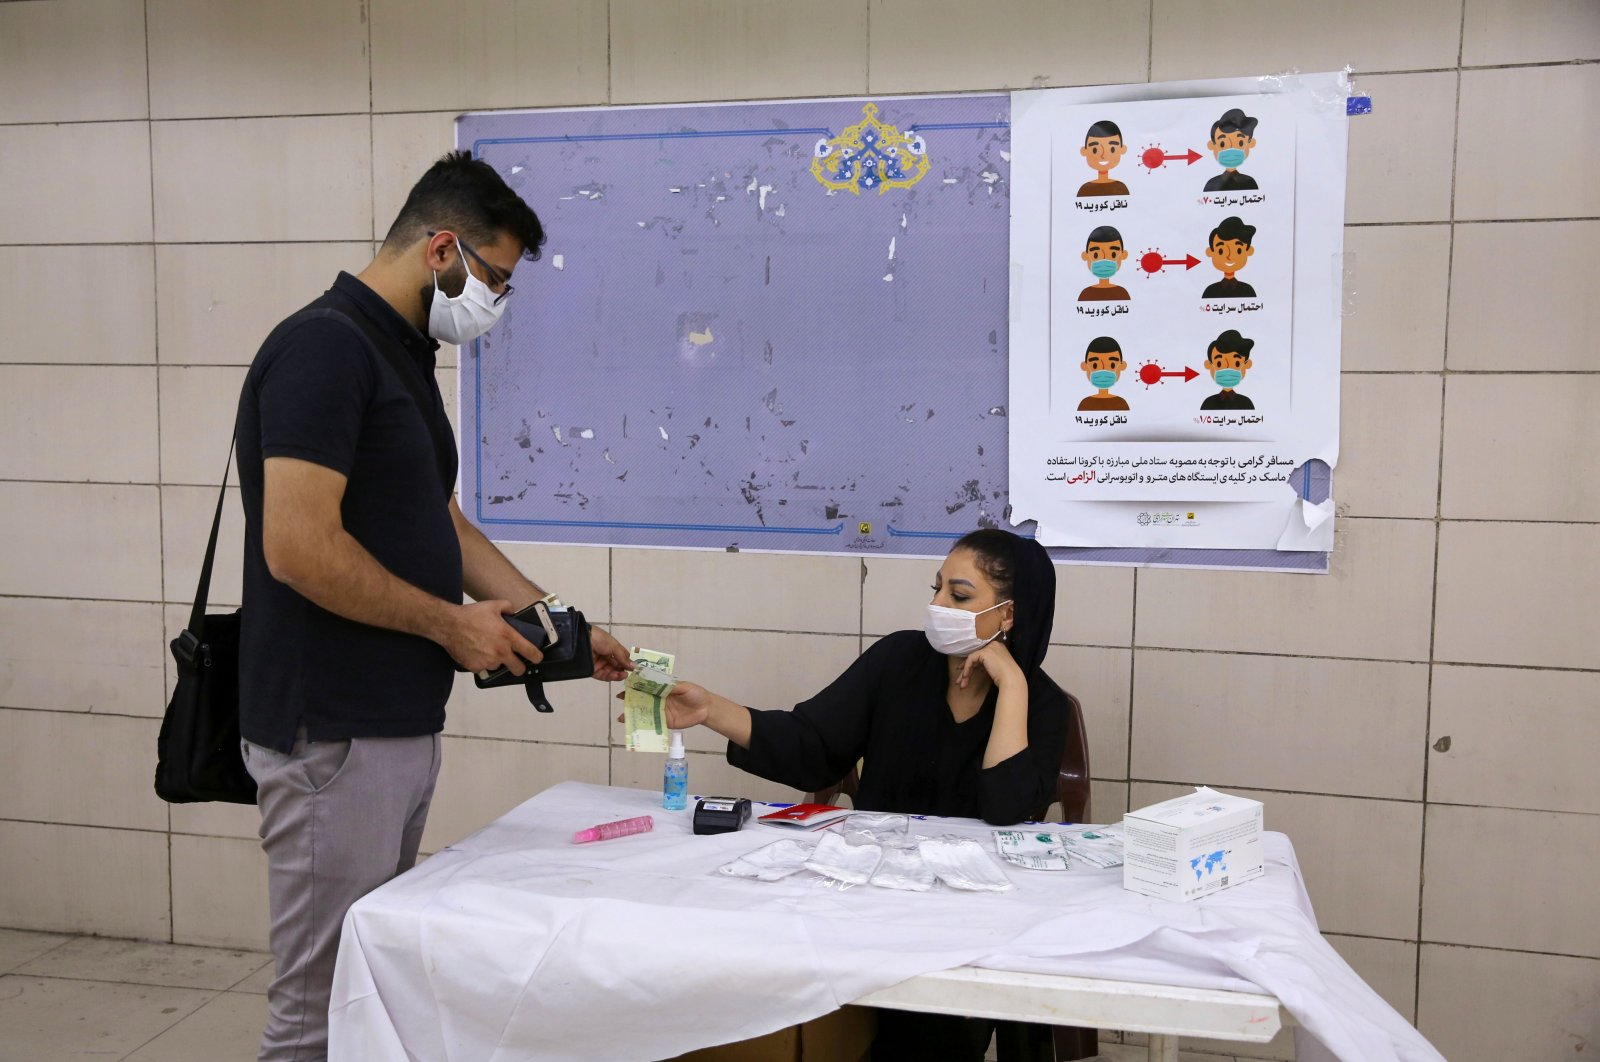 An Iranian man wearing a protective face mask buys hand sanitizer from a woman at a metro station during the COVID-19 pandemic, in the capital Tehran, Iran, July 22, 2020. (AFP Photo)